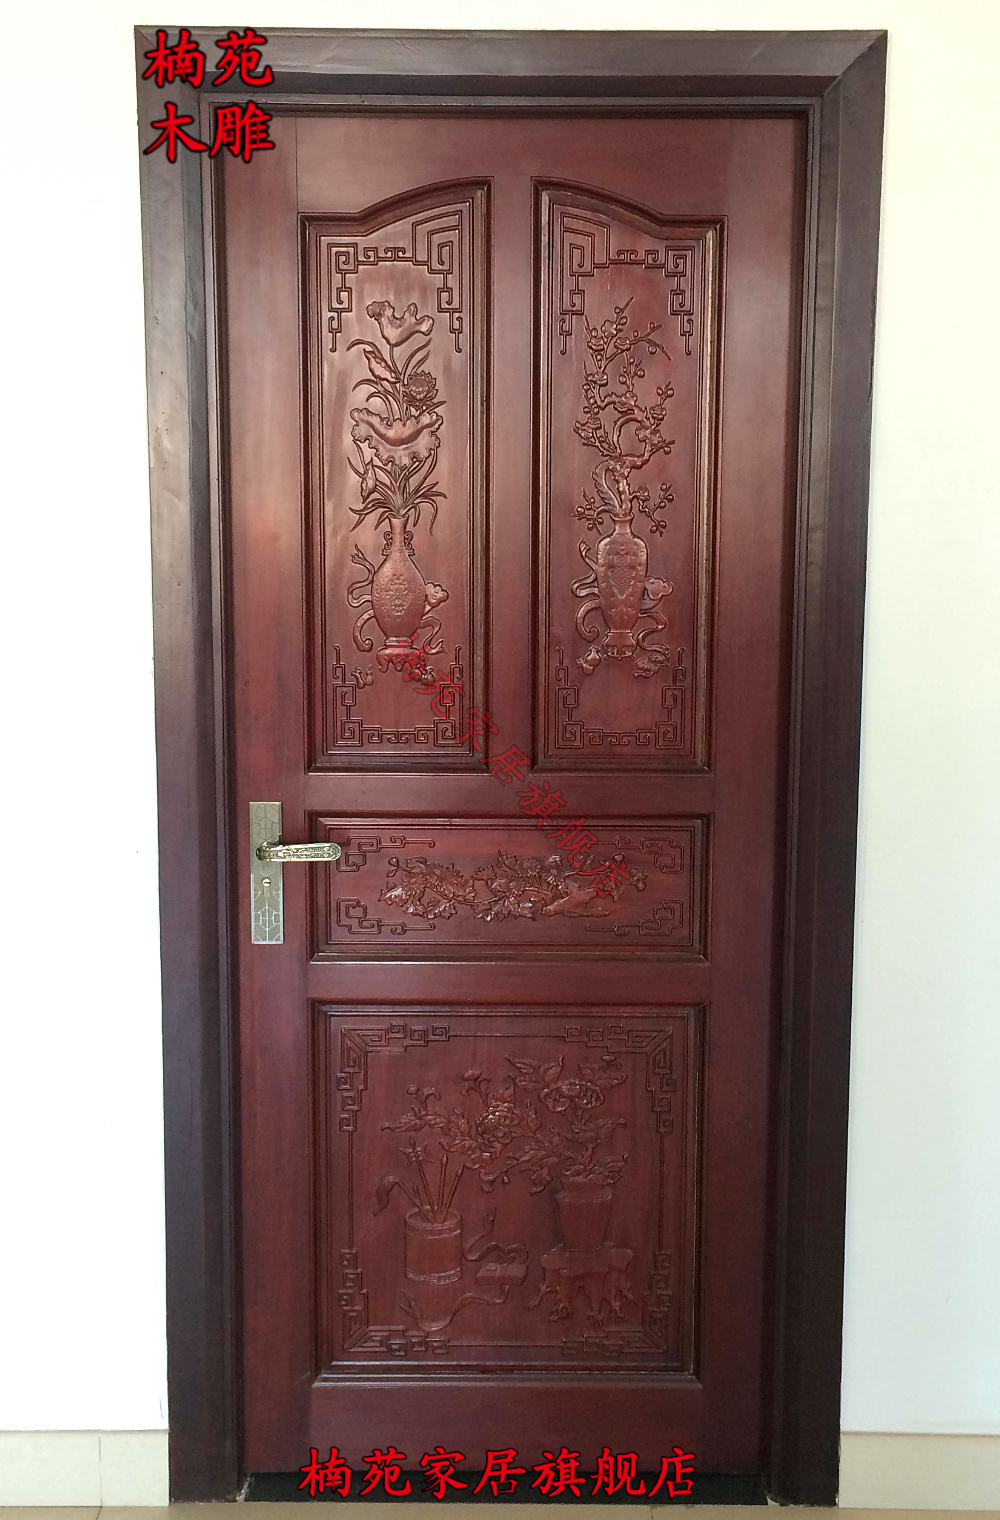 Buy Dongyang wood carving chinese antique doors and windows off screen  mahogany doors interior doors wood doors carved wood doors in Cheap Price  on ... - Buy Dongyang Wood Carving Chinese Antique Doors And Windows Off